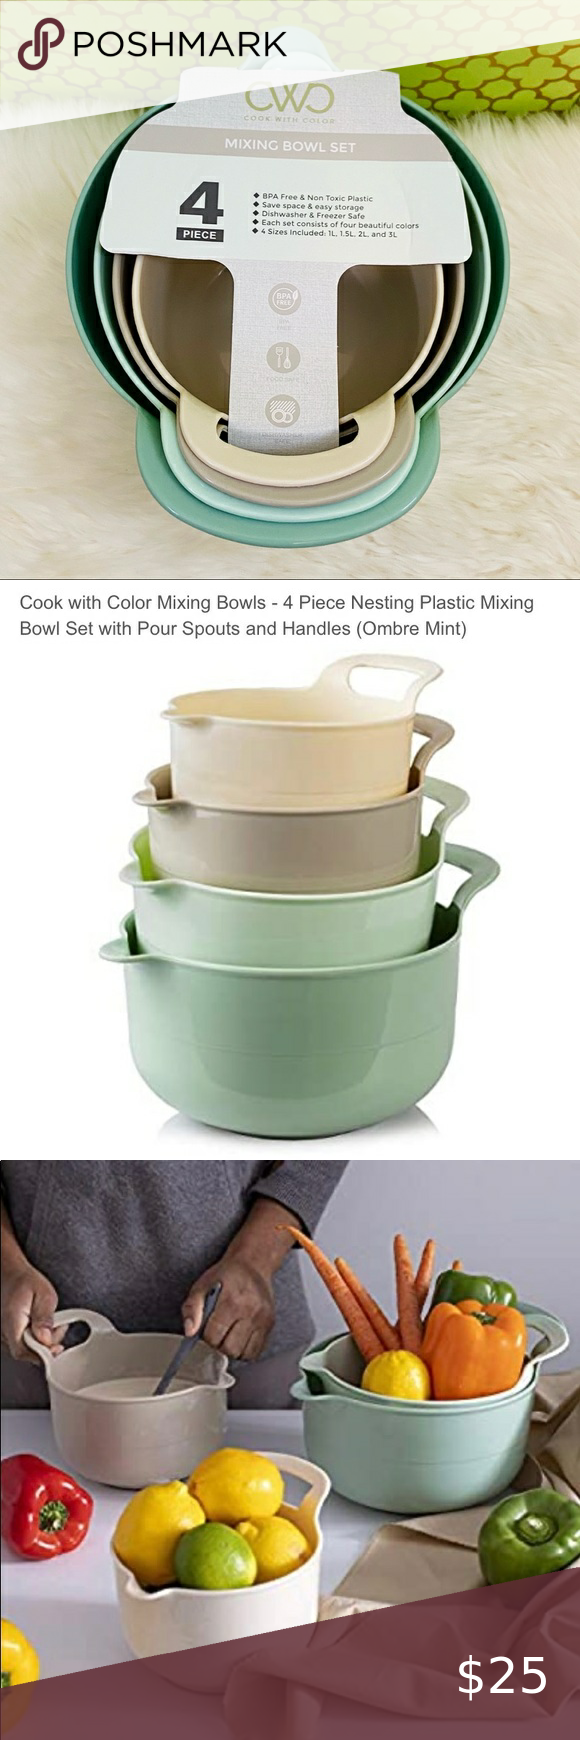 4 Piece Nesting Plastic Mixing Bowl Set with Pour Ombre Blue Mixing Bowls